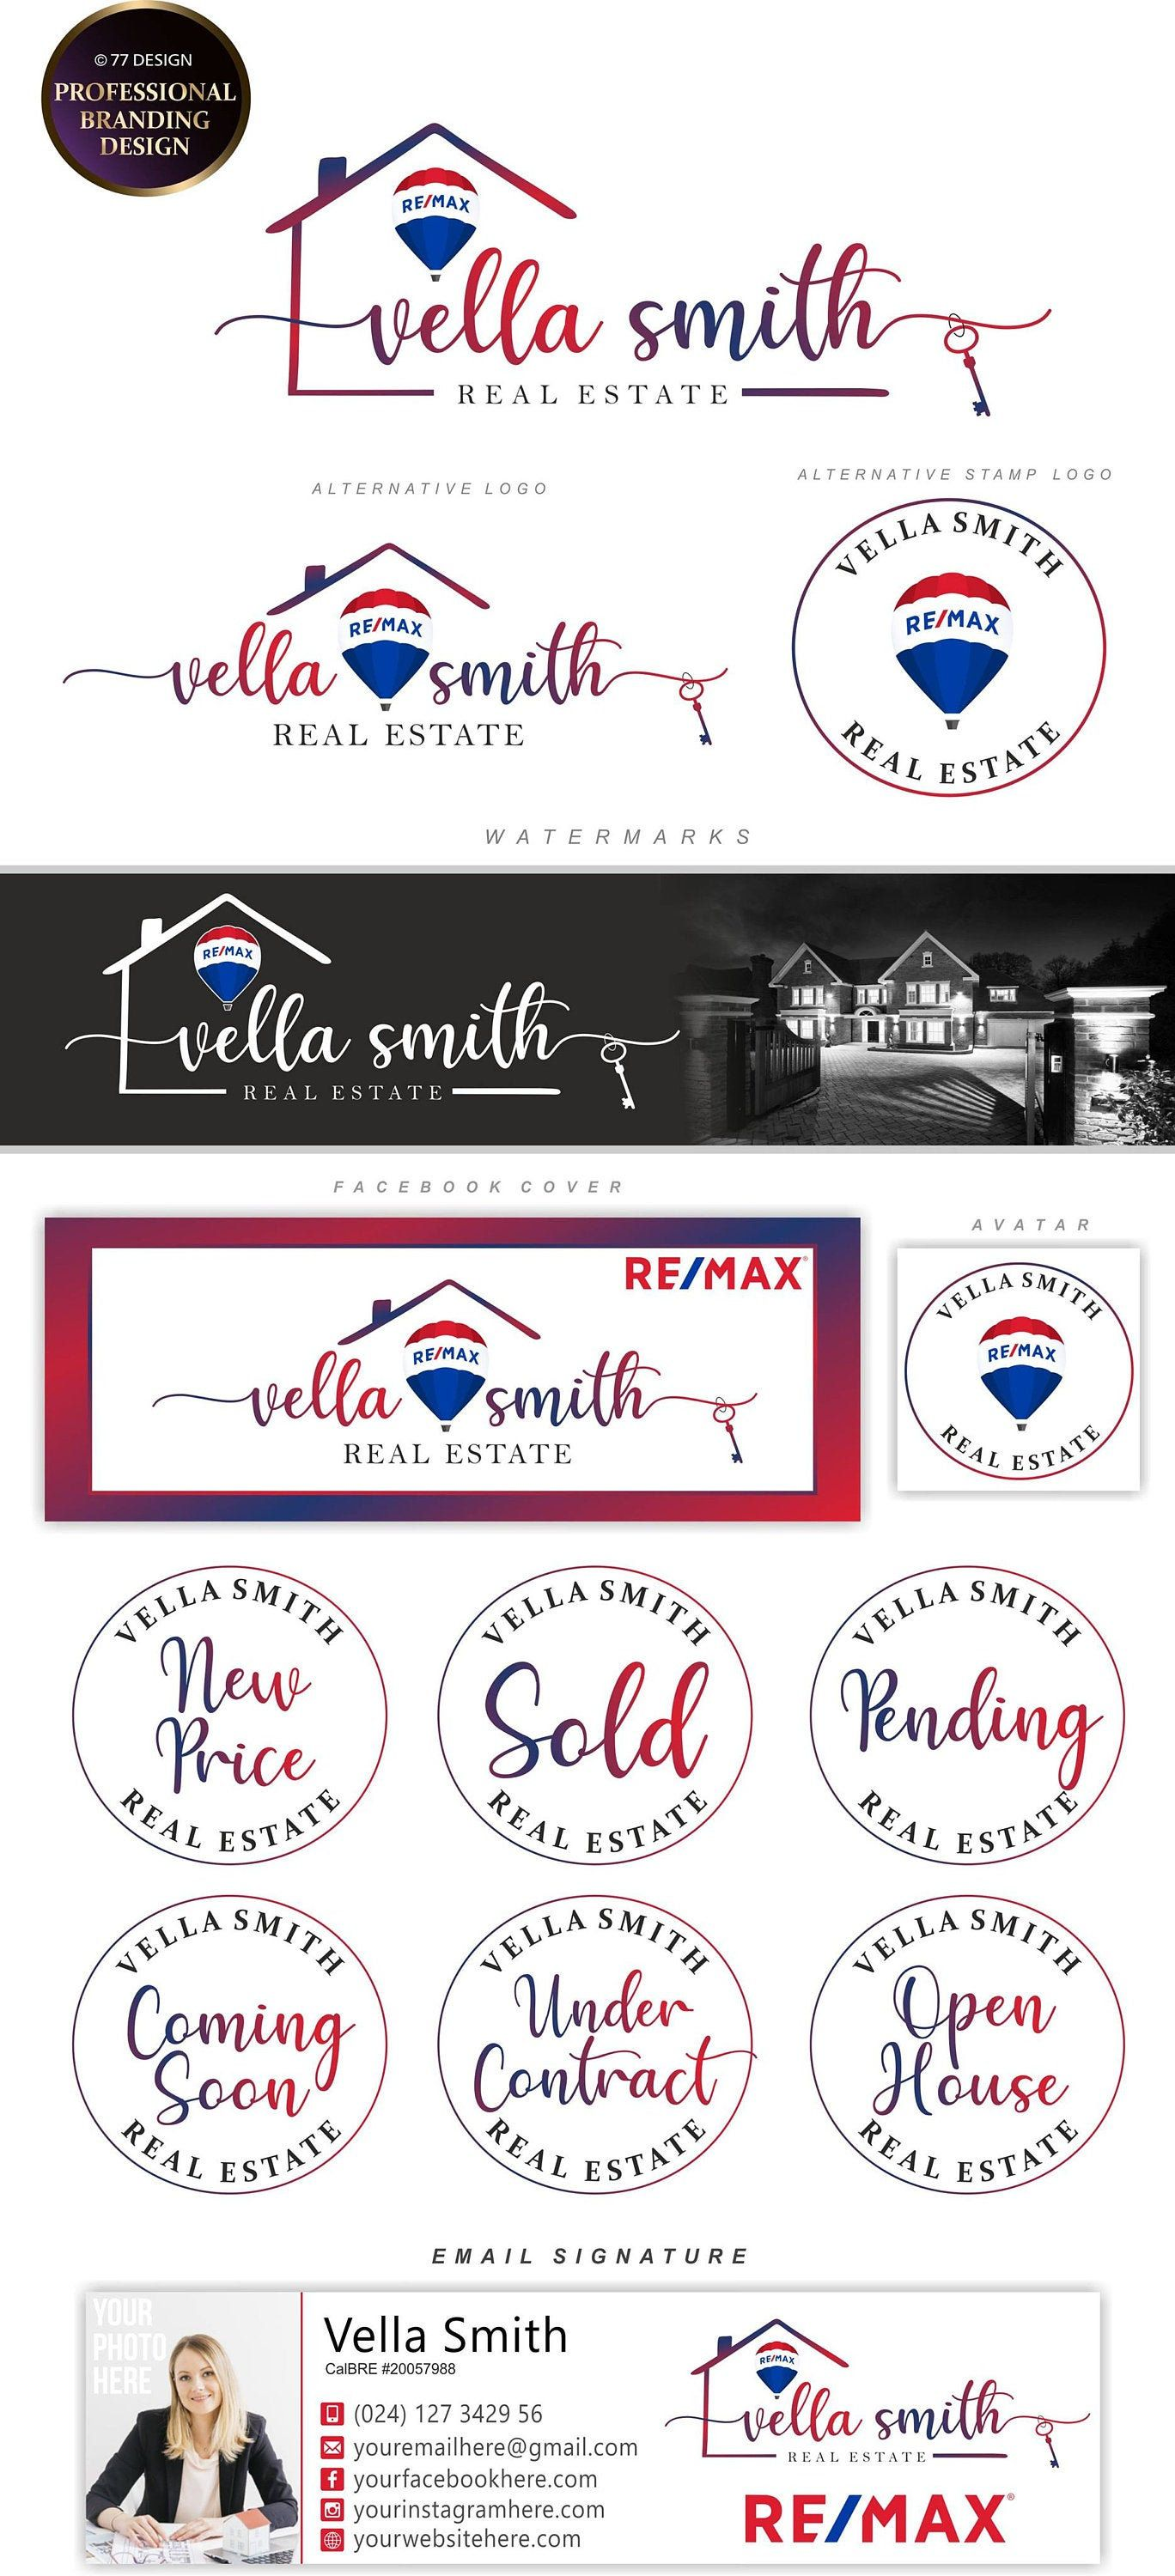 Real Estate logo design, REMAX balloon logo, Branding kit, Realtor logo, Real estate agent marketing stamp House key logo, Broker design 241